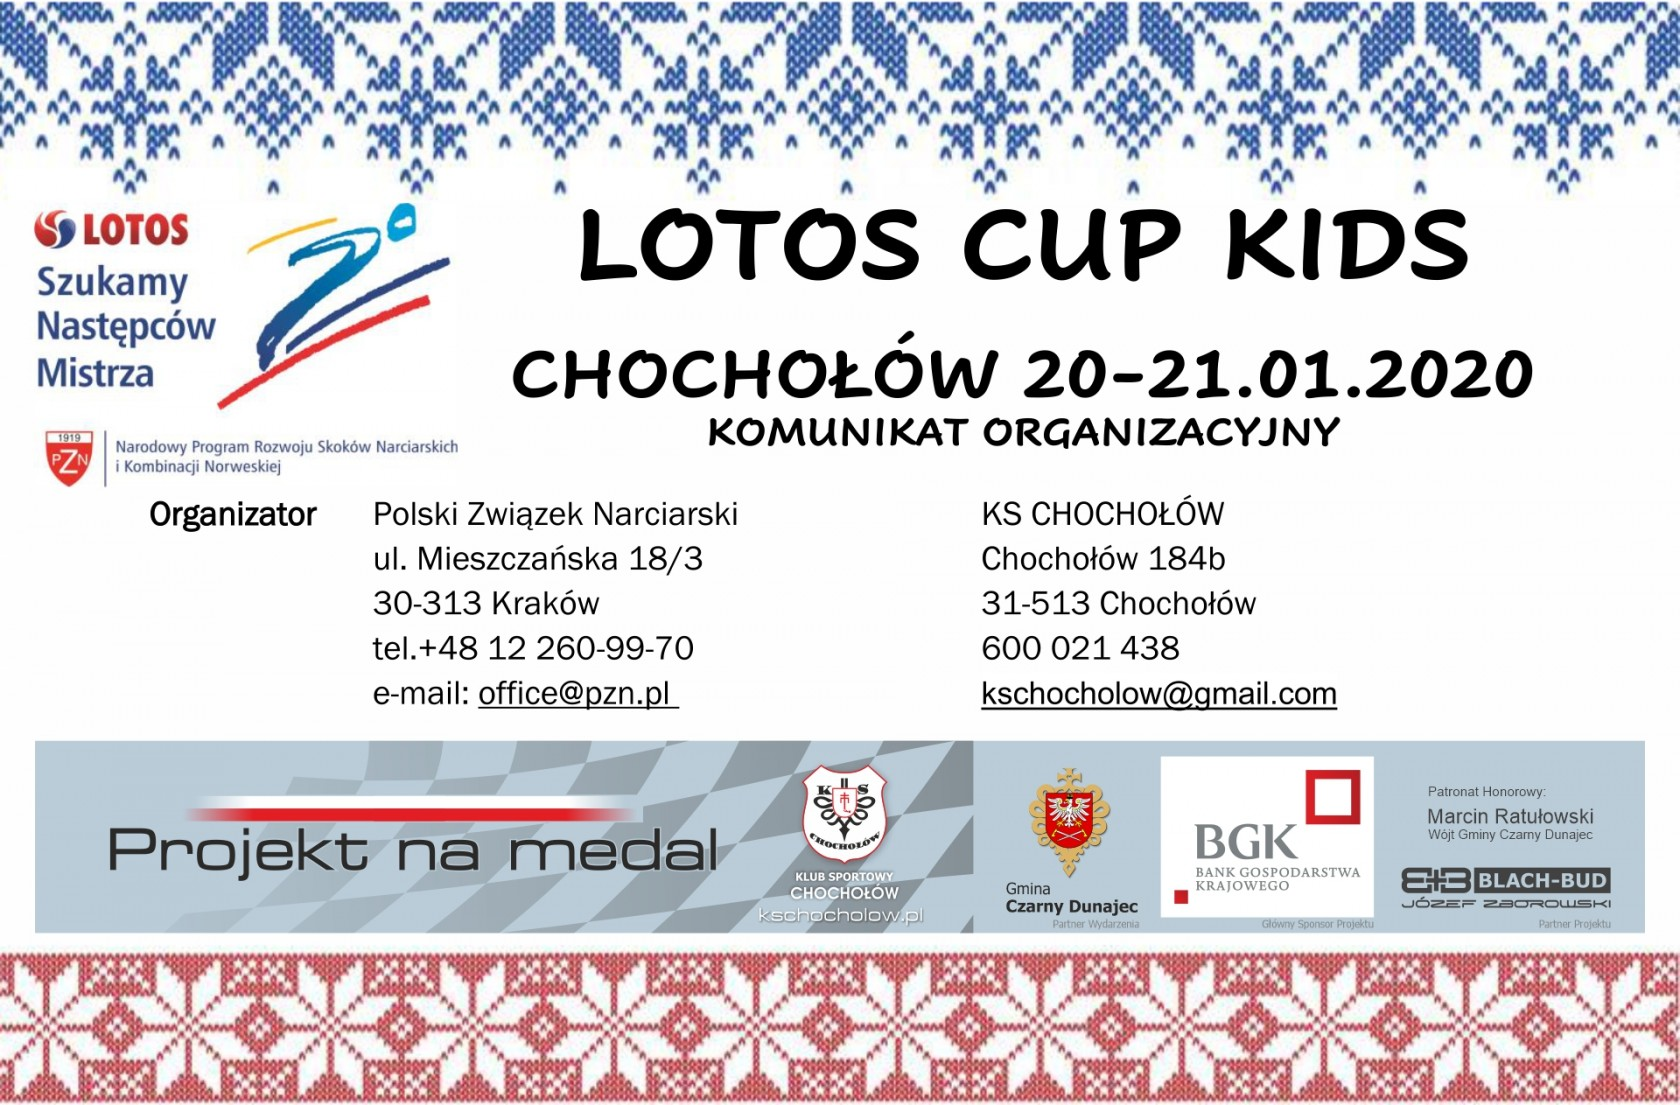 Lotos Cup Kids 20-21.01.2020